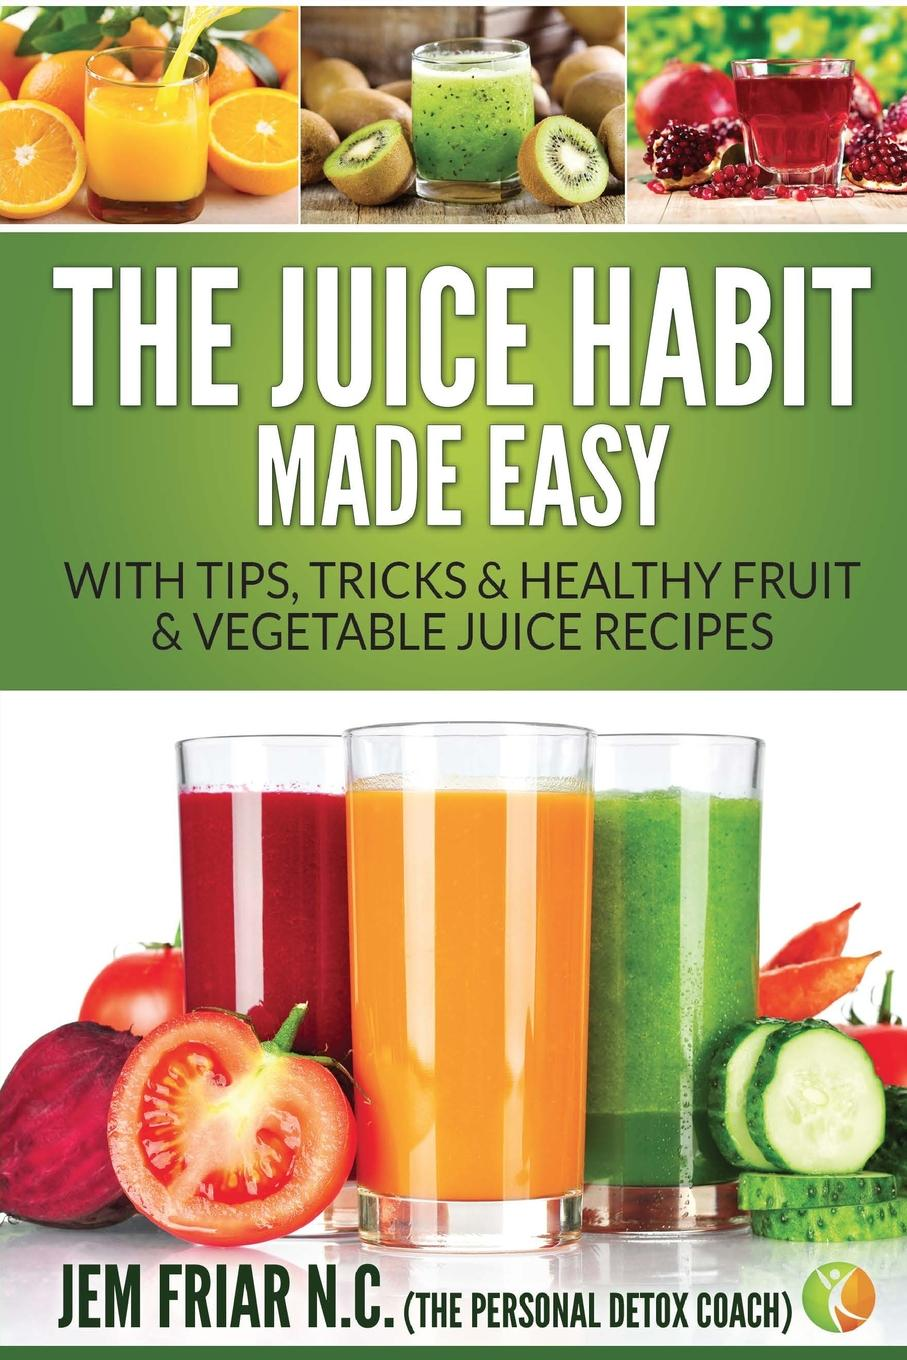 Jem Friar The Juice Habit Made Easy. With Tips, Tricks . Healthy Fruit . Vegetable Juice Recipes naturopathy